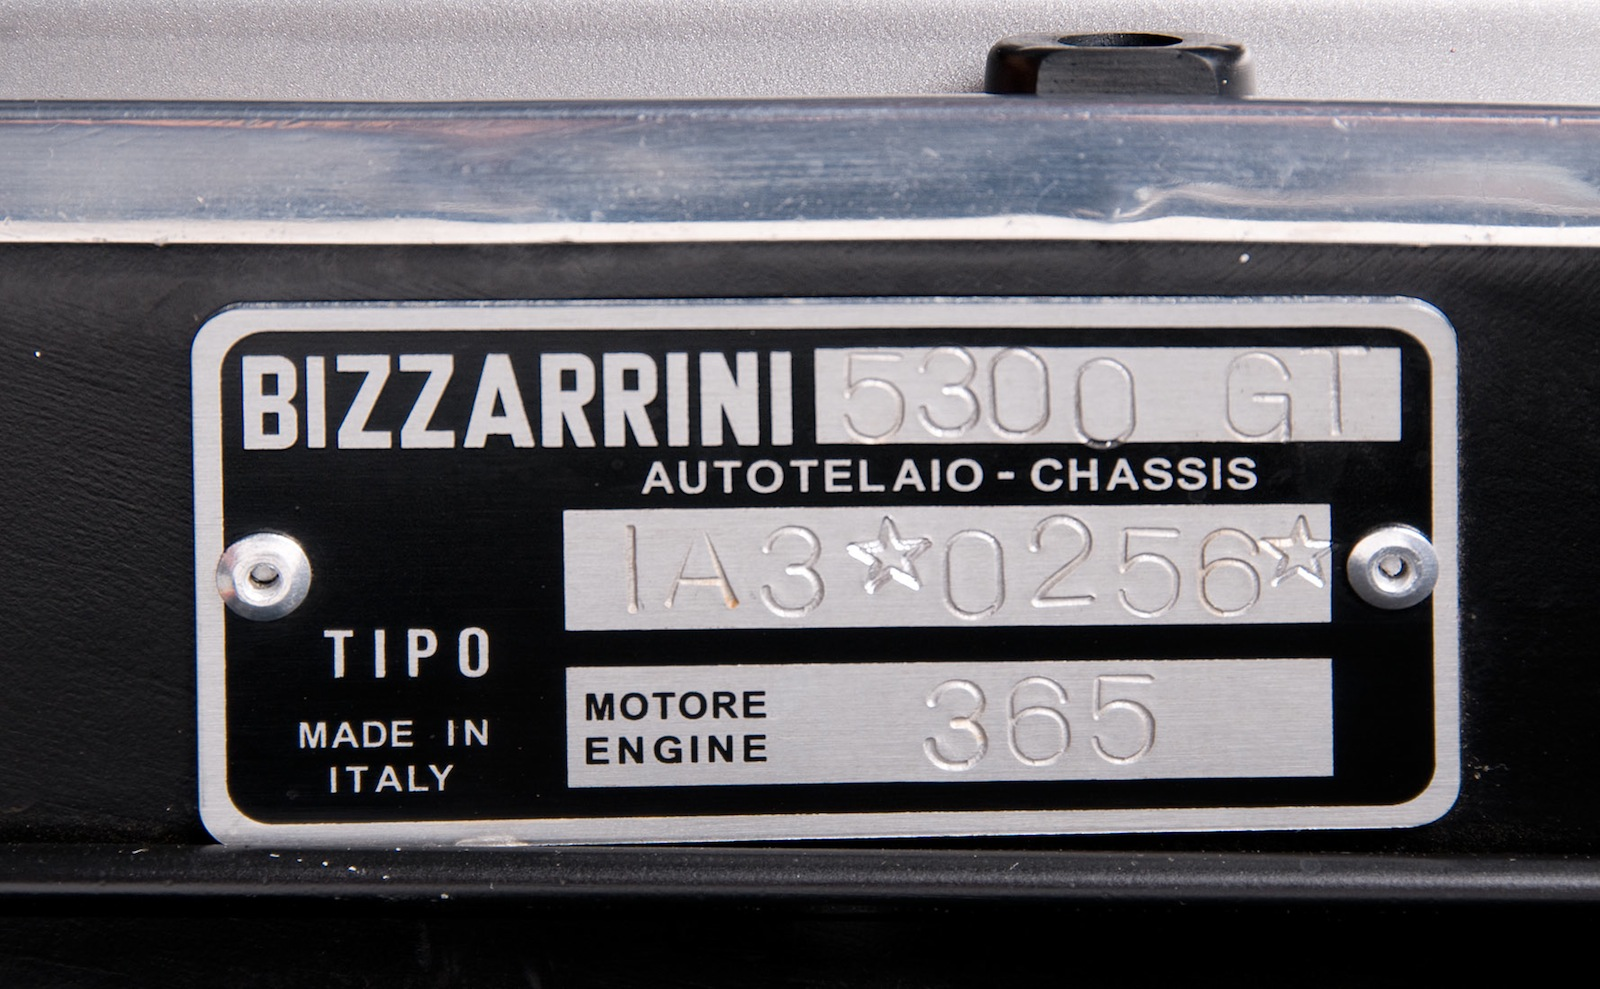 Chaise Number 1966 Bizzarrini Gt 5300 Strada Chassis Number Ia3 0256